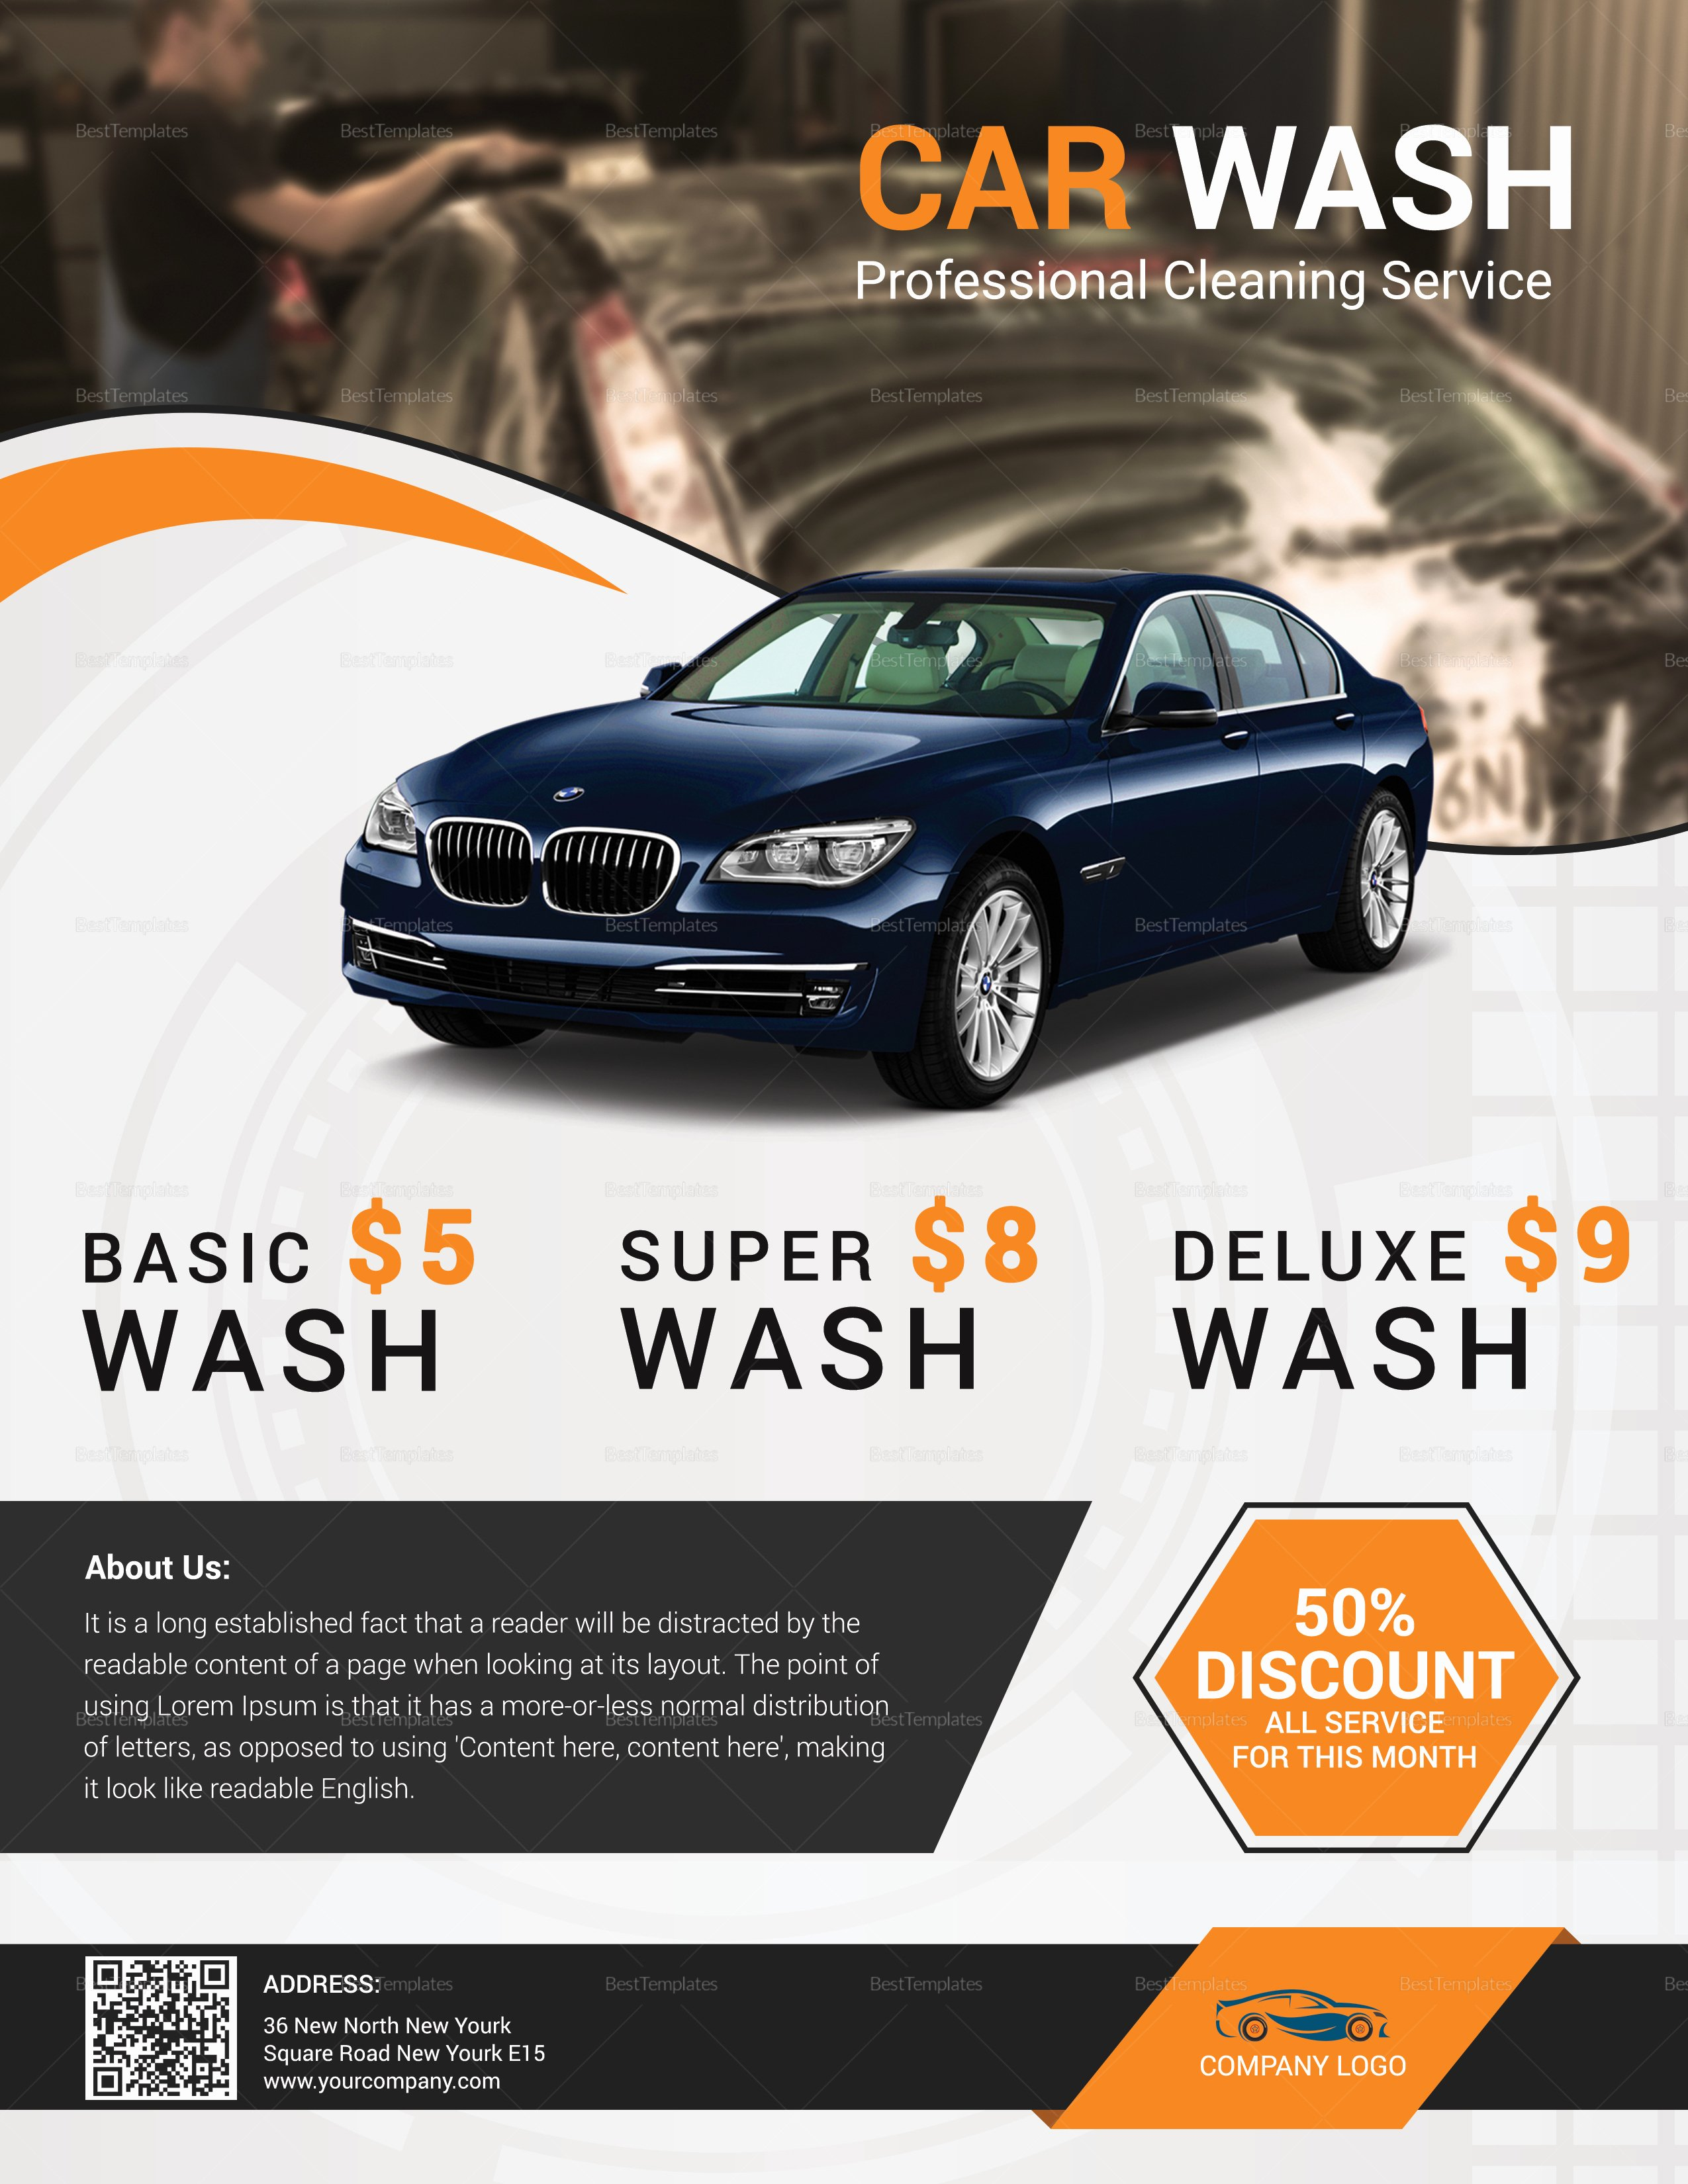 Car Wash Flyer Template Lovely Special Car Wash Flyer Design Template In Word Psd Publisher